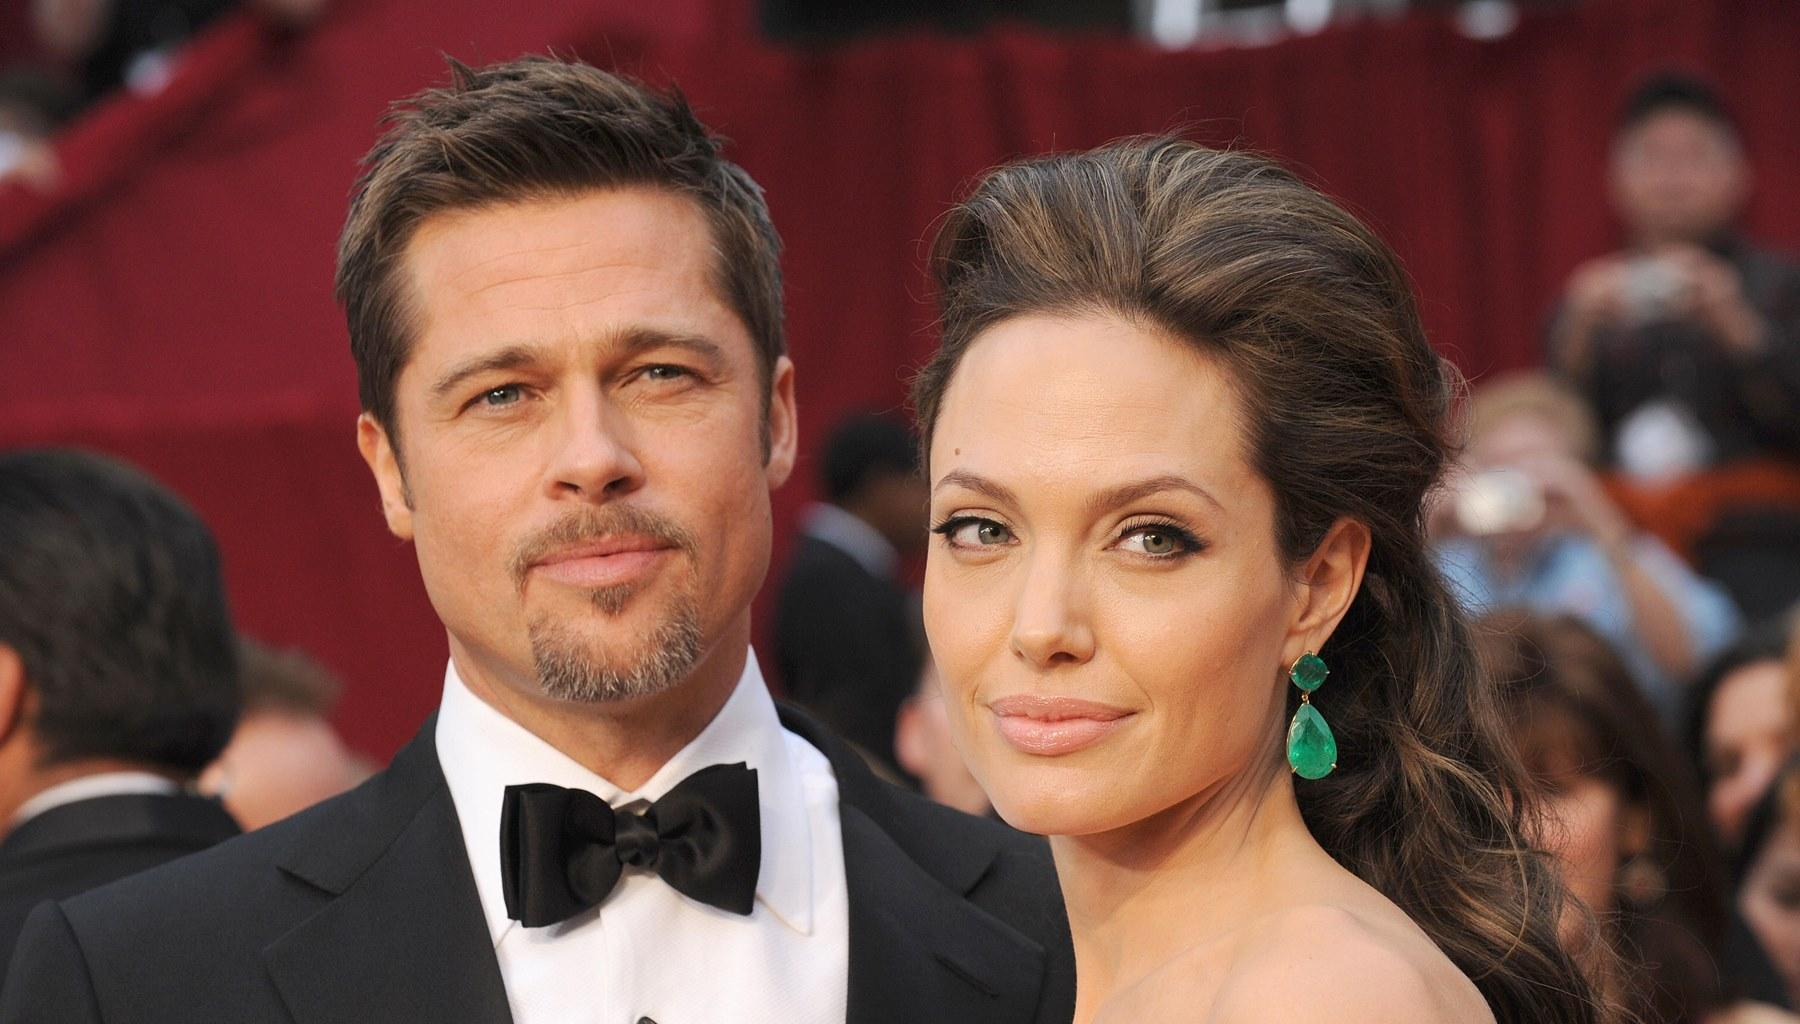 Angelina Jolie Is Giving Brad Pitt The Desire Of His Heart For Christmas As He Connects With Jennifer Aniston On A New Level